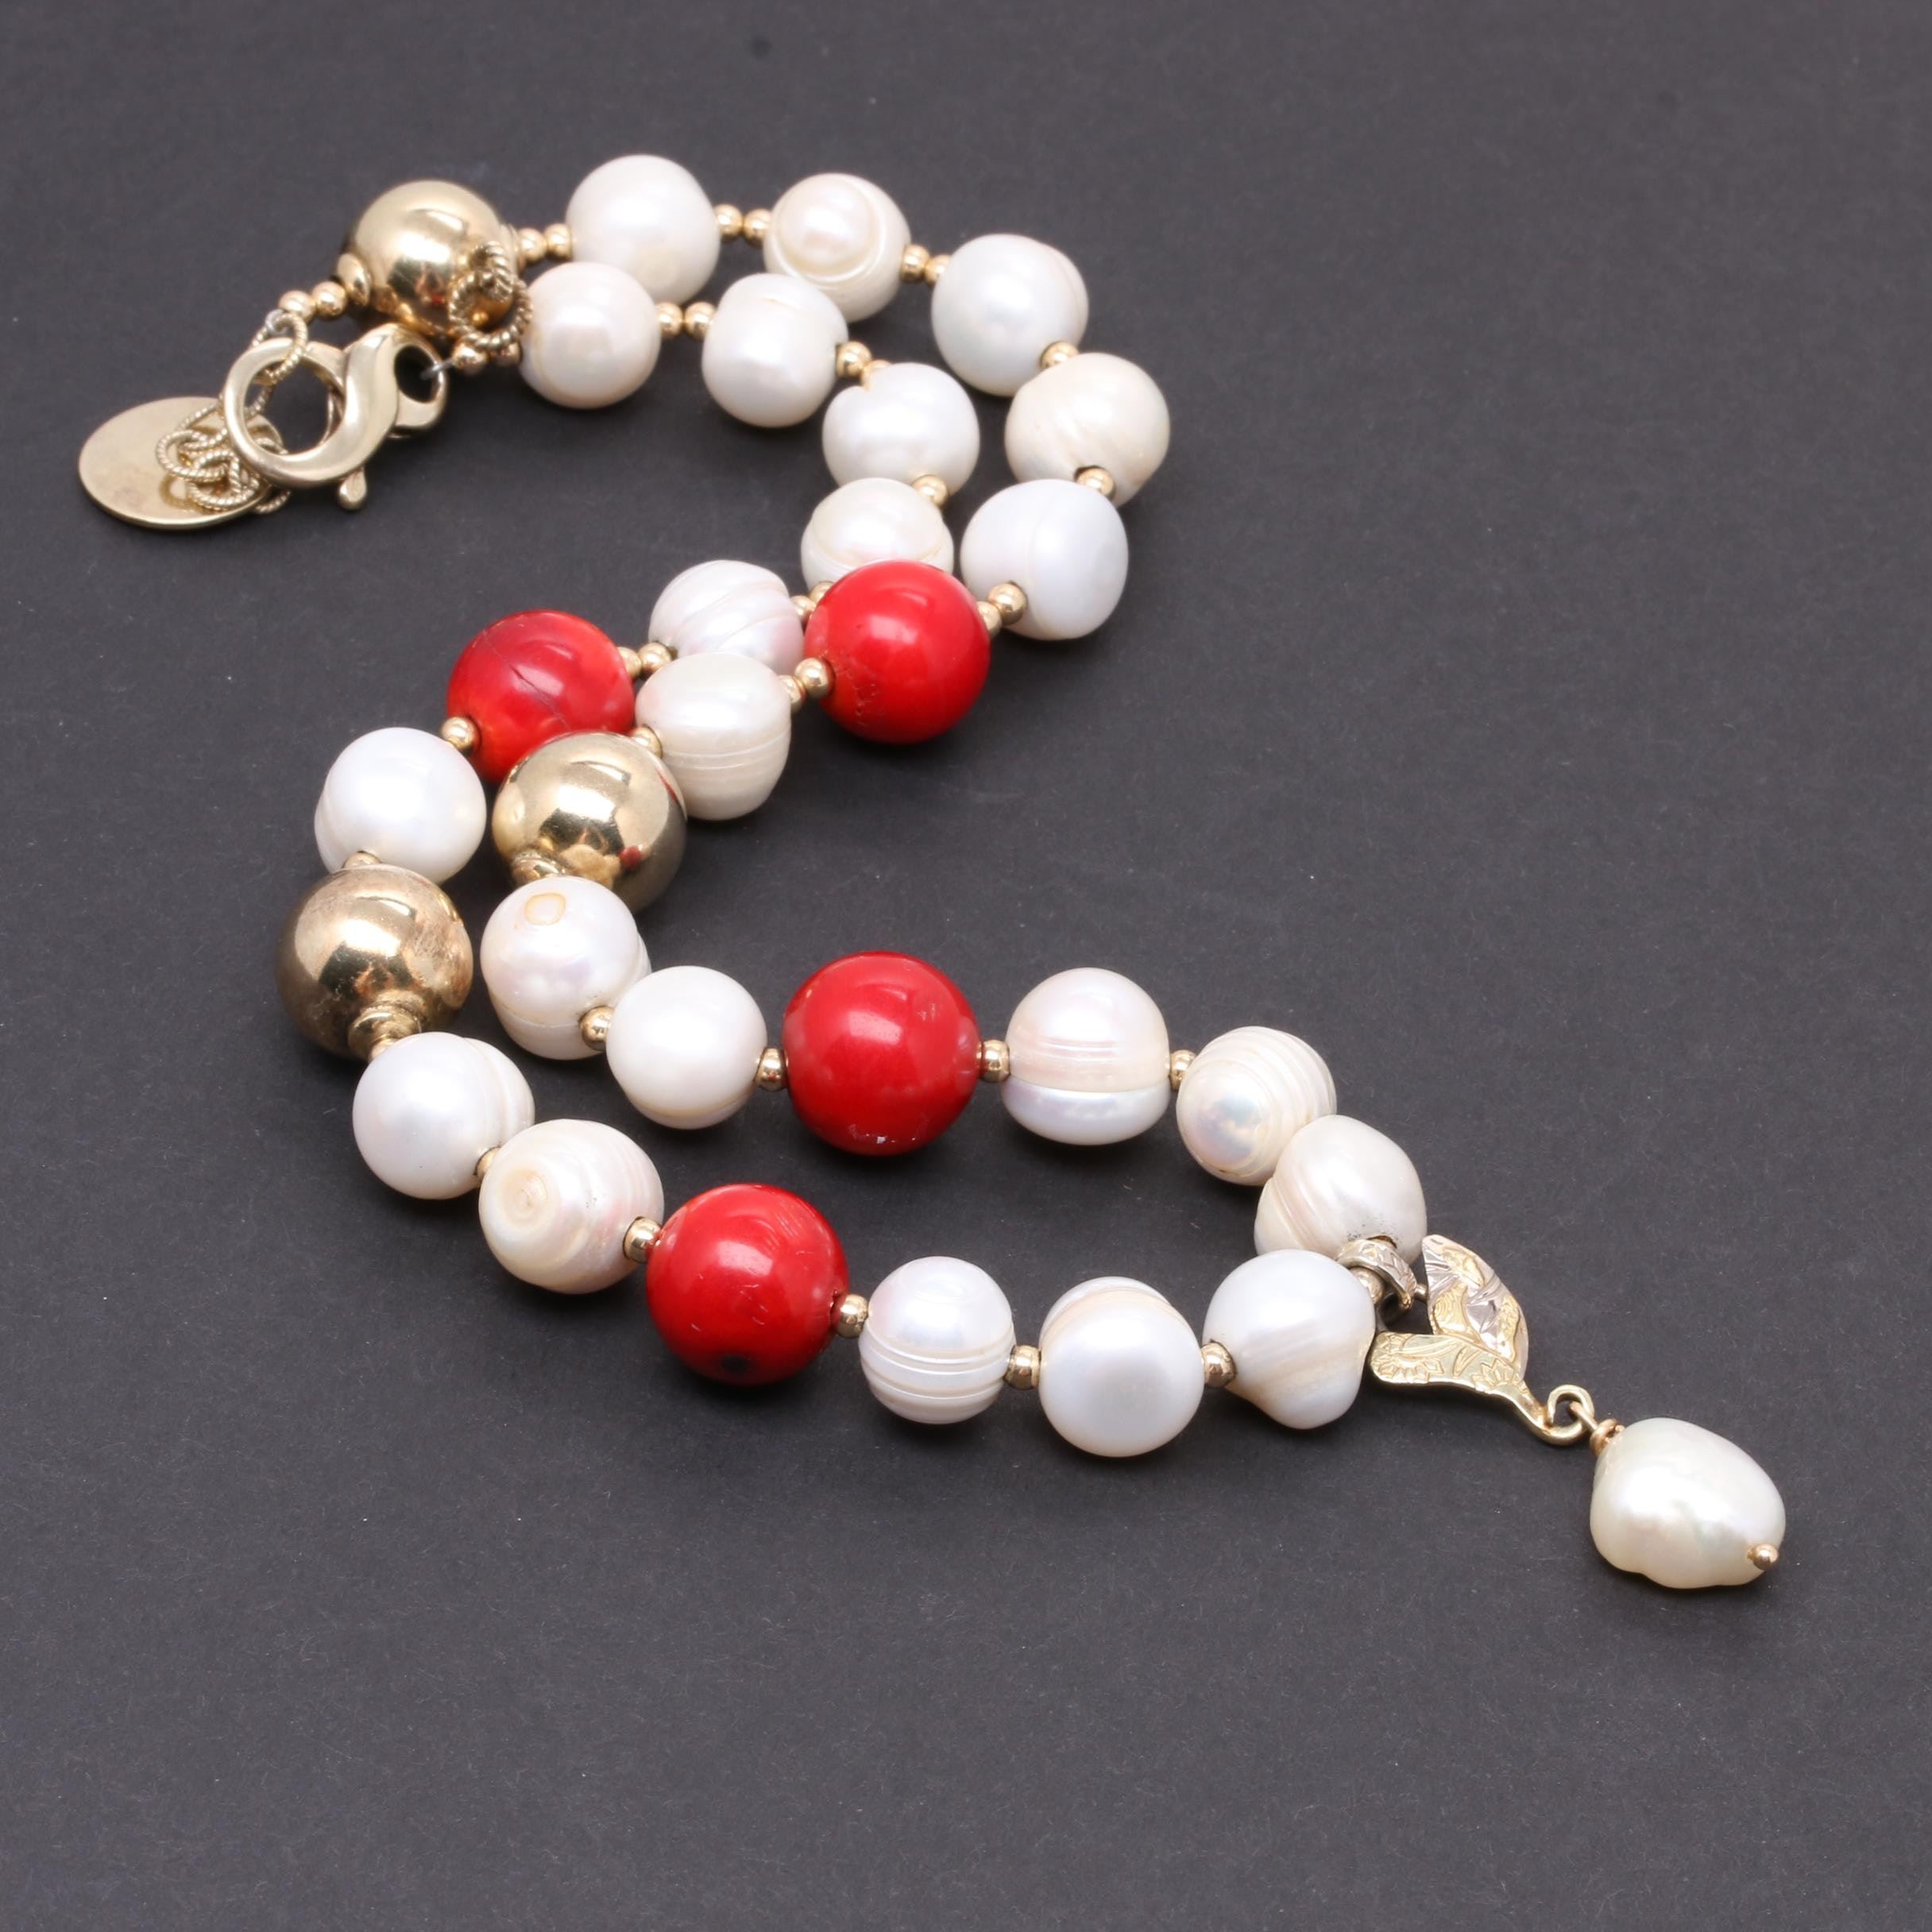 Del Brenna Sterling Silver Cultured Pearl and Coral Necklace with 14K Gold